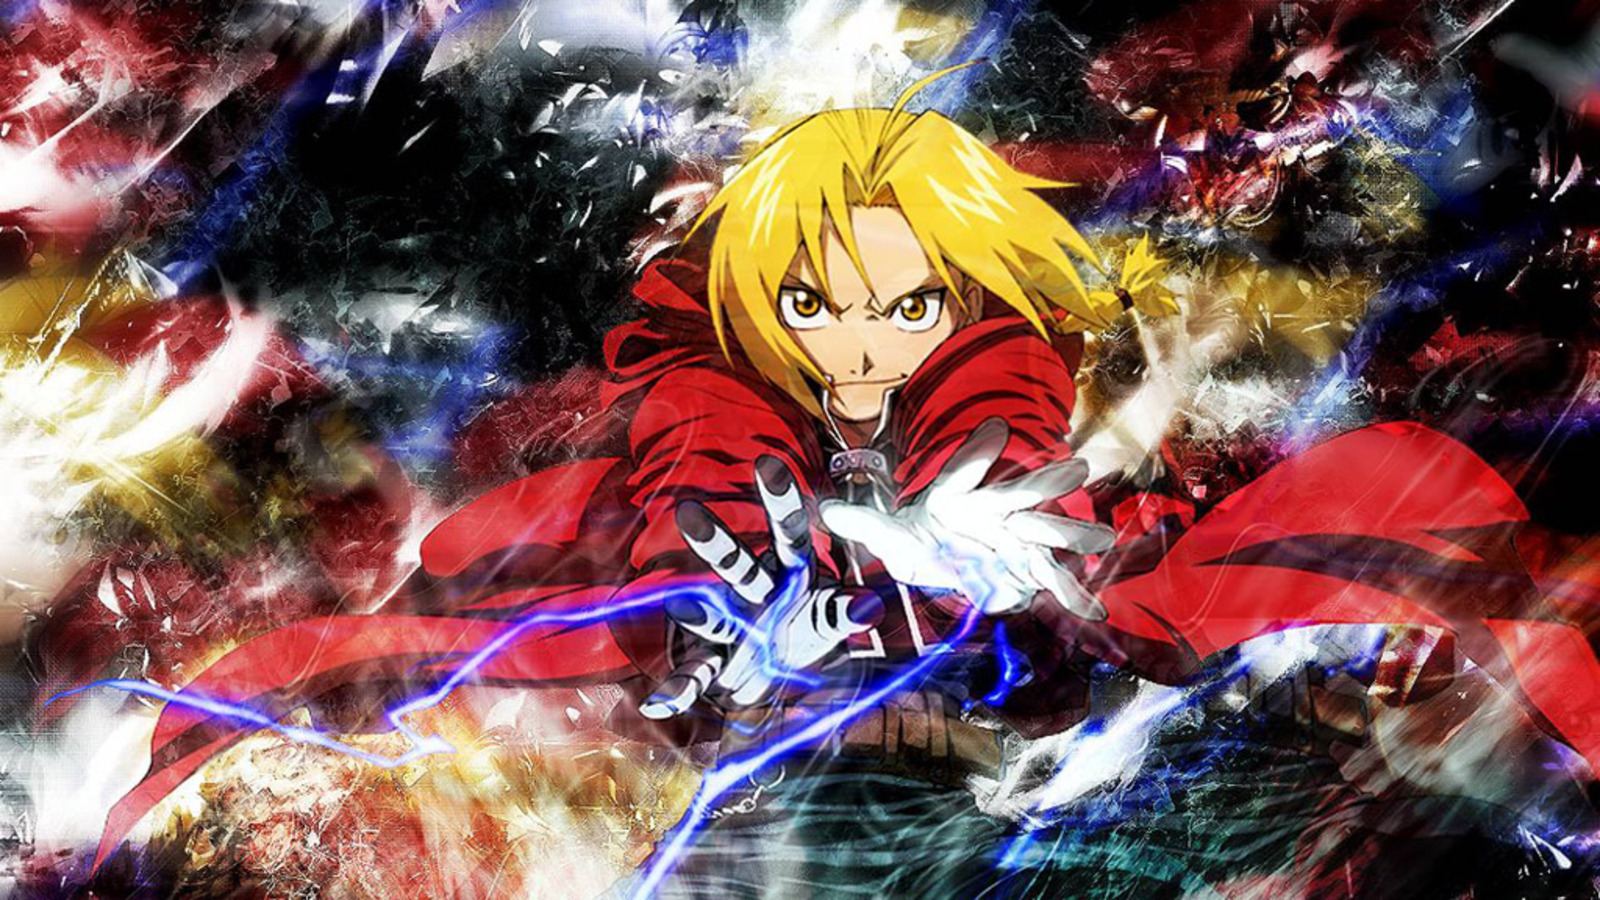 FullMetal Alchemist Computer Wallpapers Desktop Backgrounds 1600x900